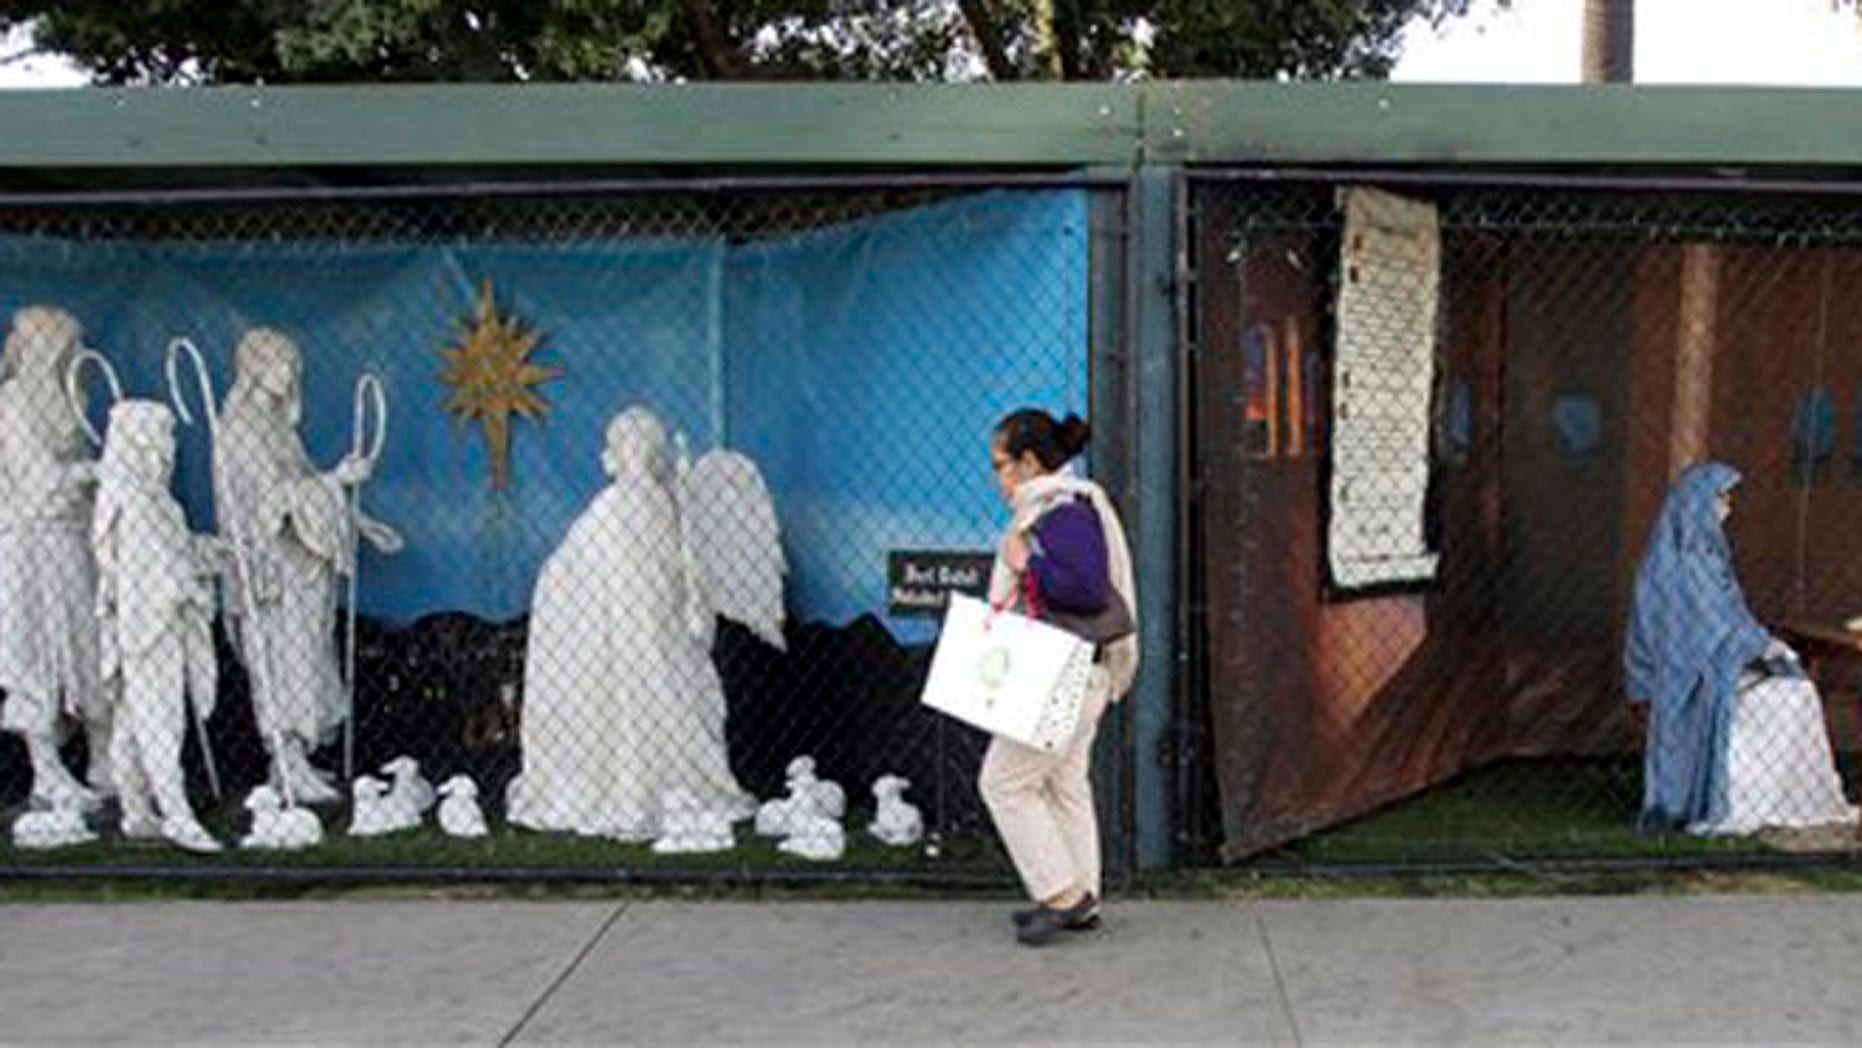 FILE - In this Dec. 13, 2011 file photo, a woman walks past a two of the traditional displays showing the Nativity scene along Ocean Avenue at Palisades Park in Santa Monica, Calif.